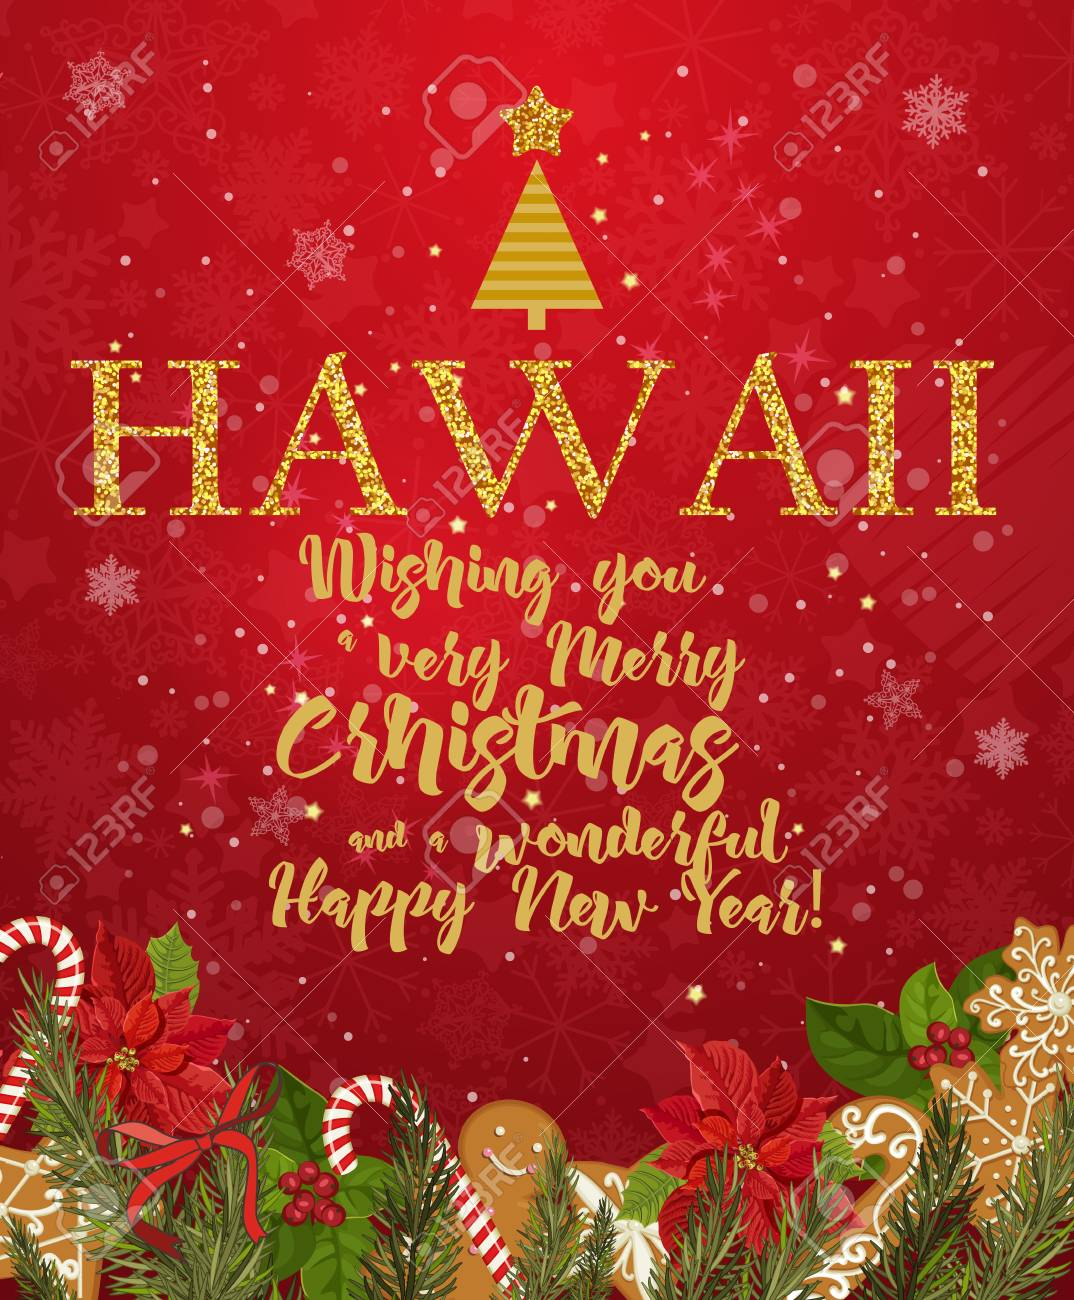 hawaii merry christmas and a happy new year greeting vector card on red background with snowflakes